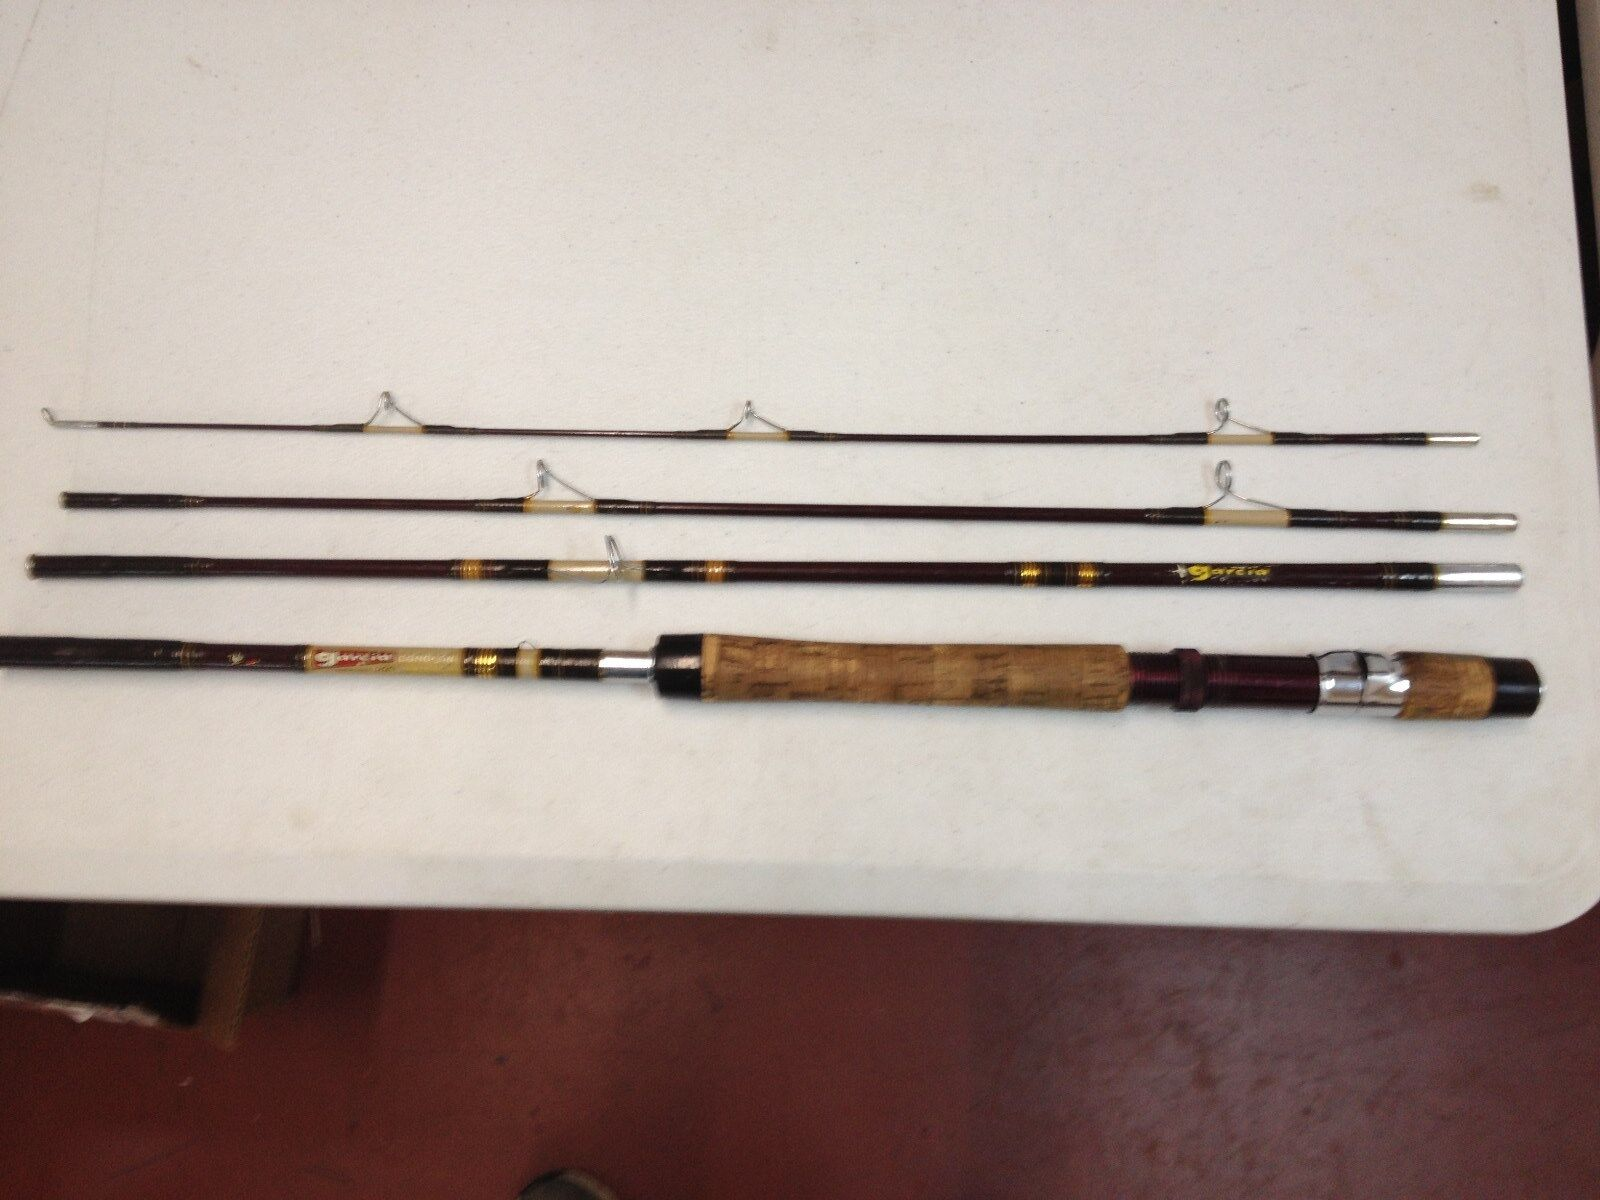 Garcia Conolon 3 Star B542-D 7.5 ft Dry Fly  Light action 1 4-1 2 oz fly rod 8lb  beautiful